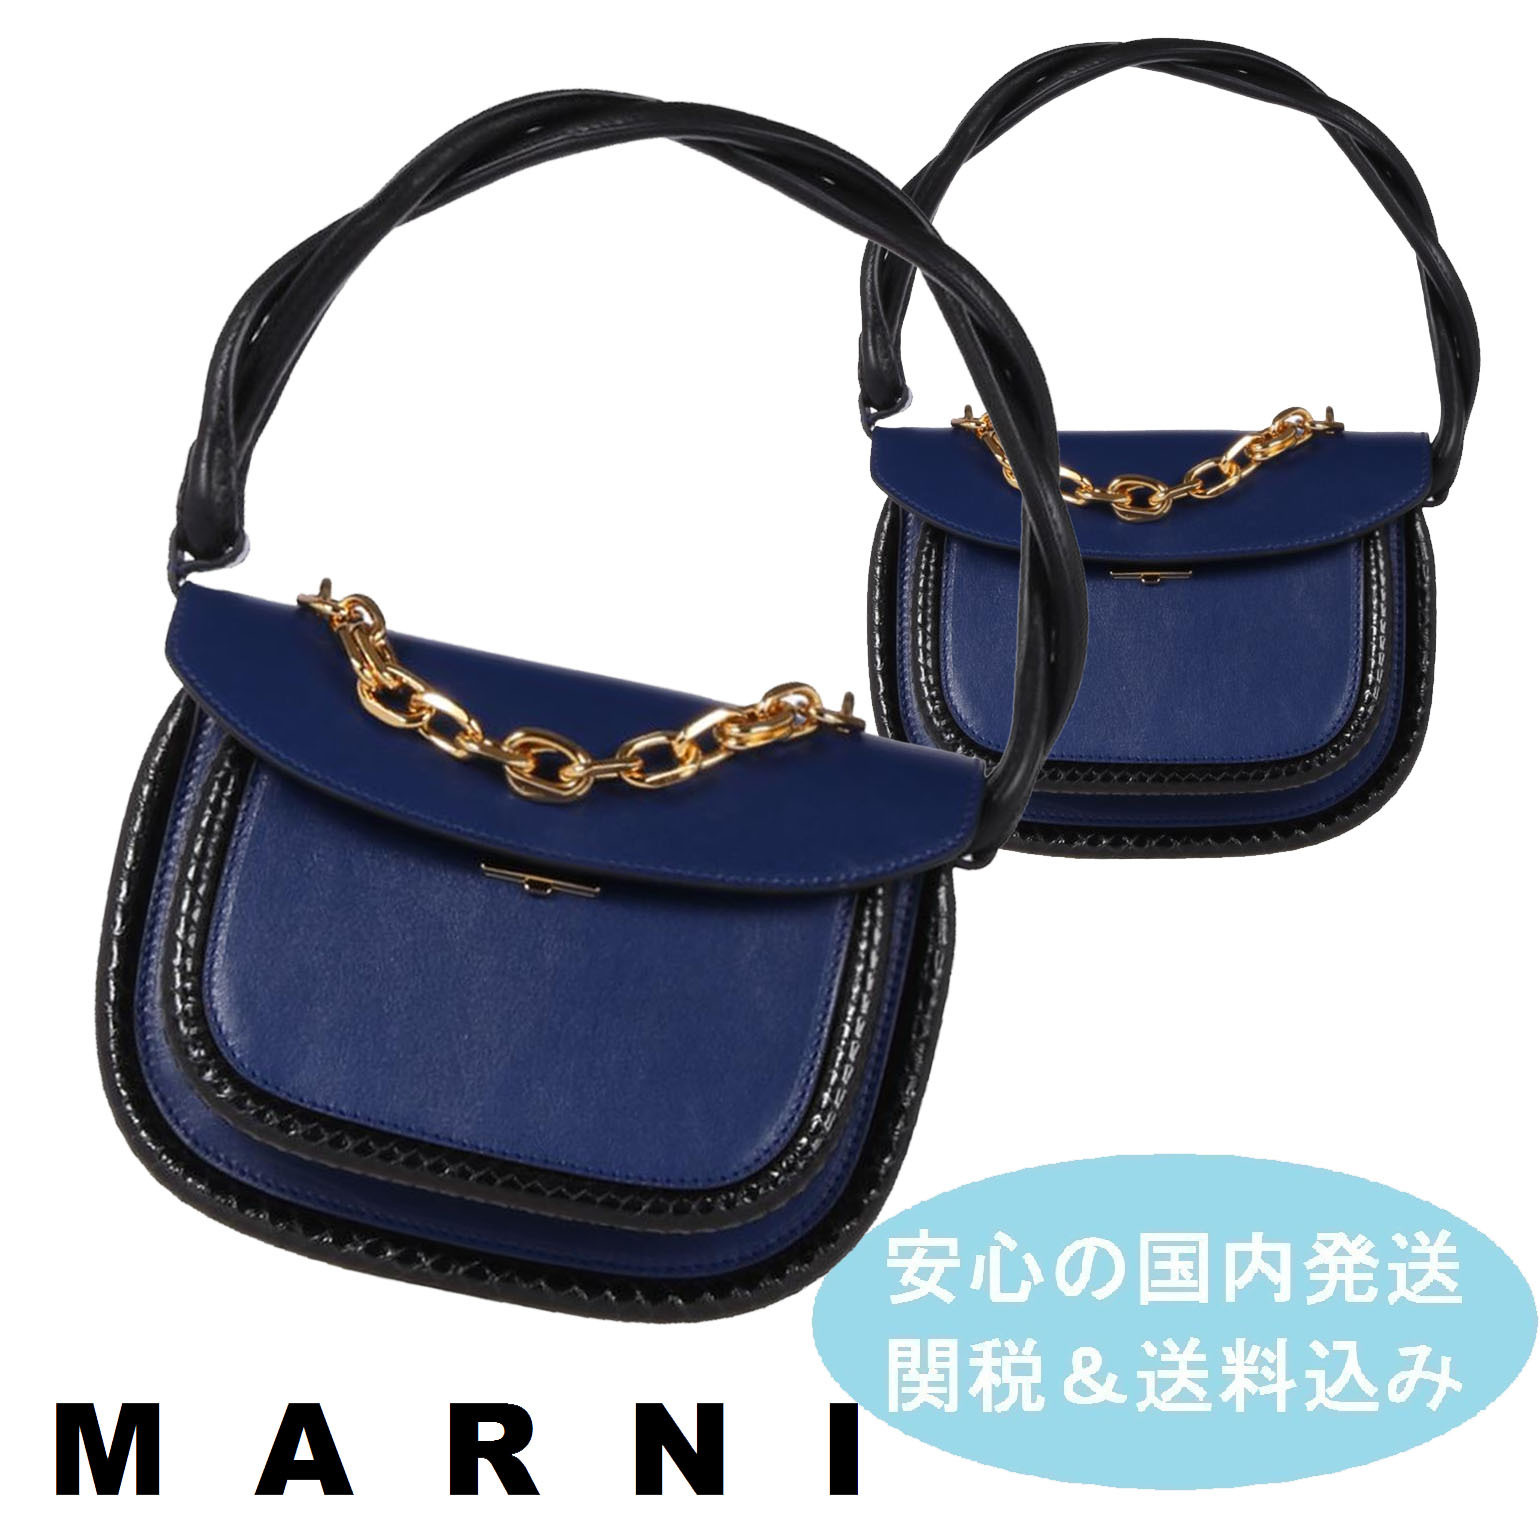 【送料関税故】MARNI★Titan Bag in Bicolor Leather★国内発送